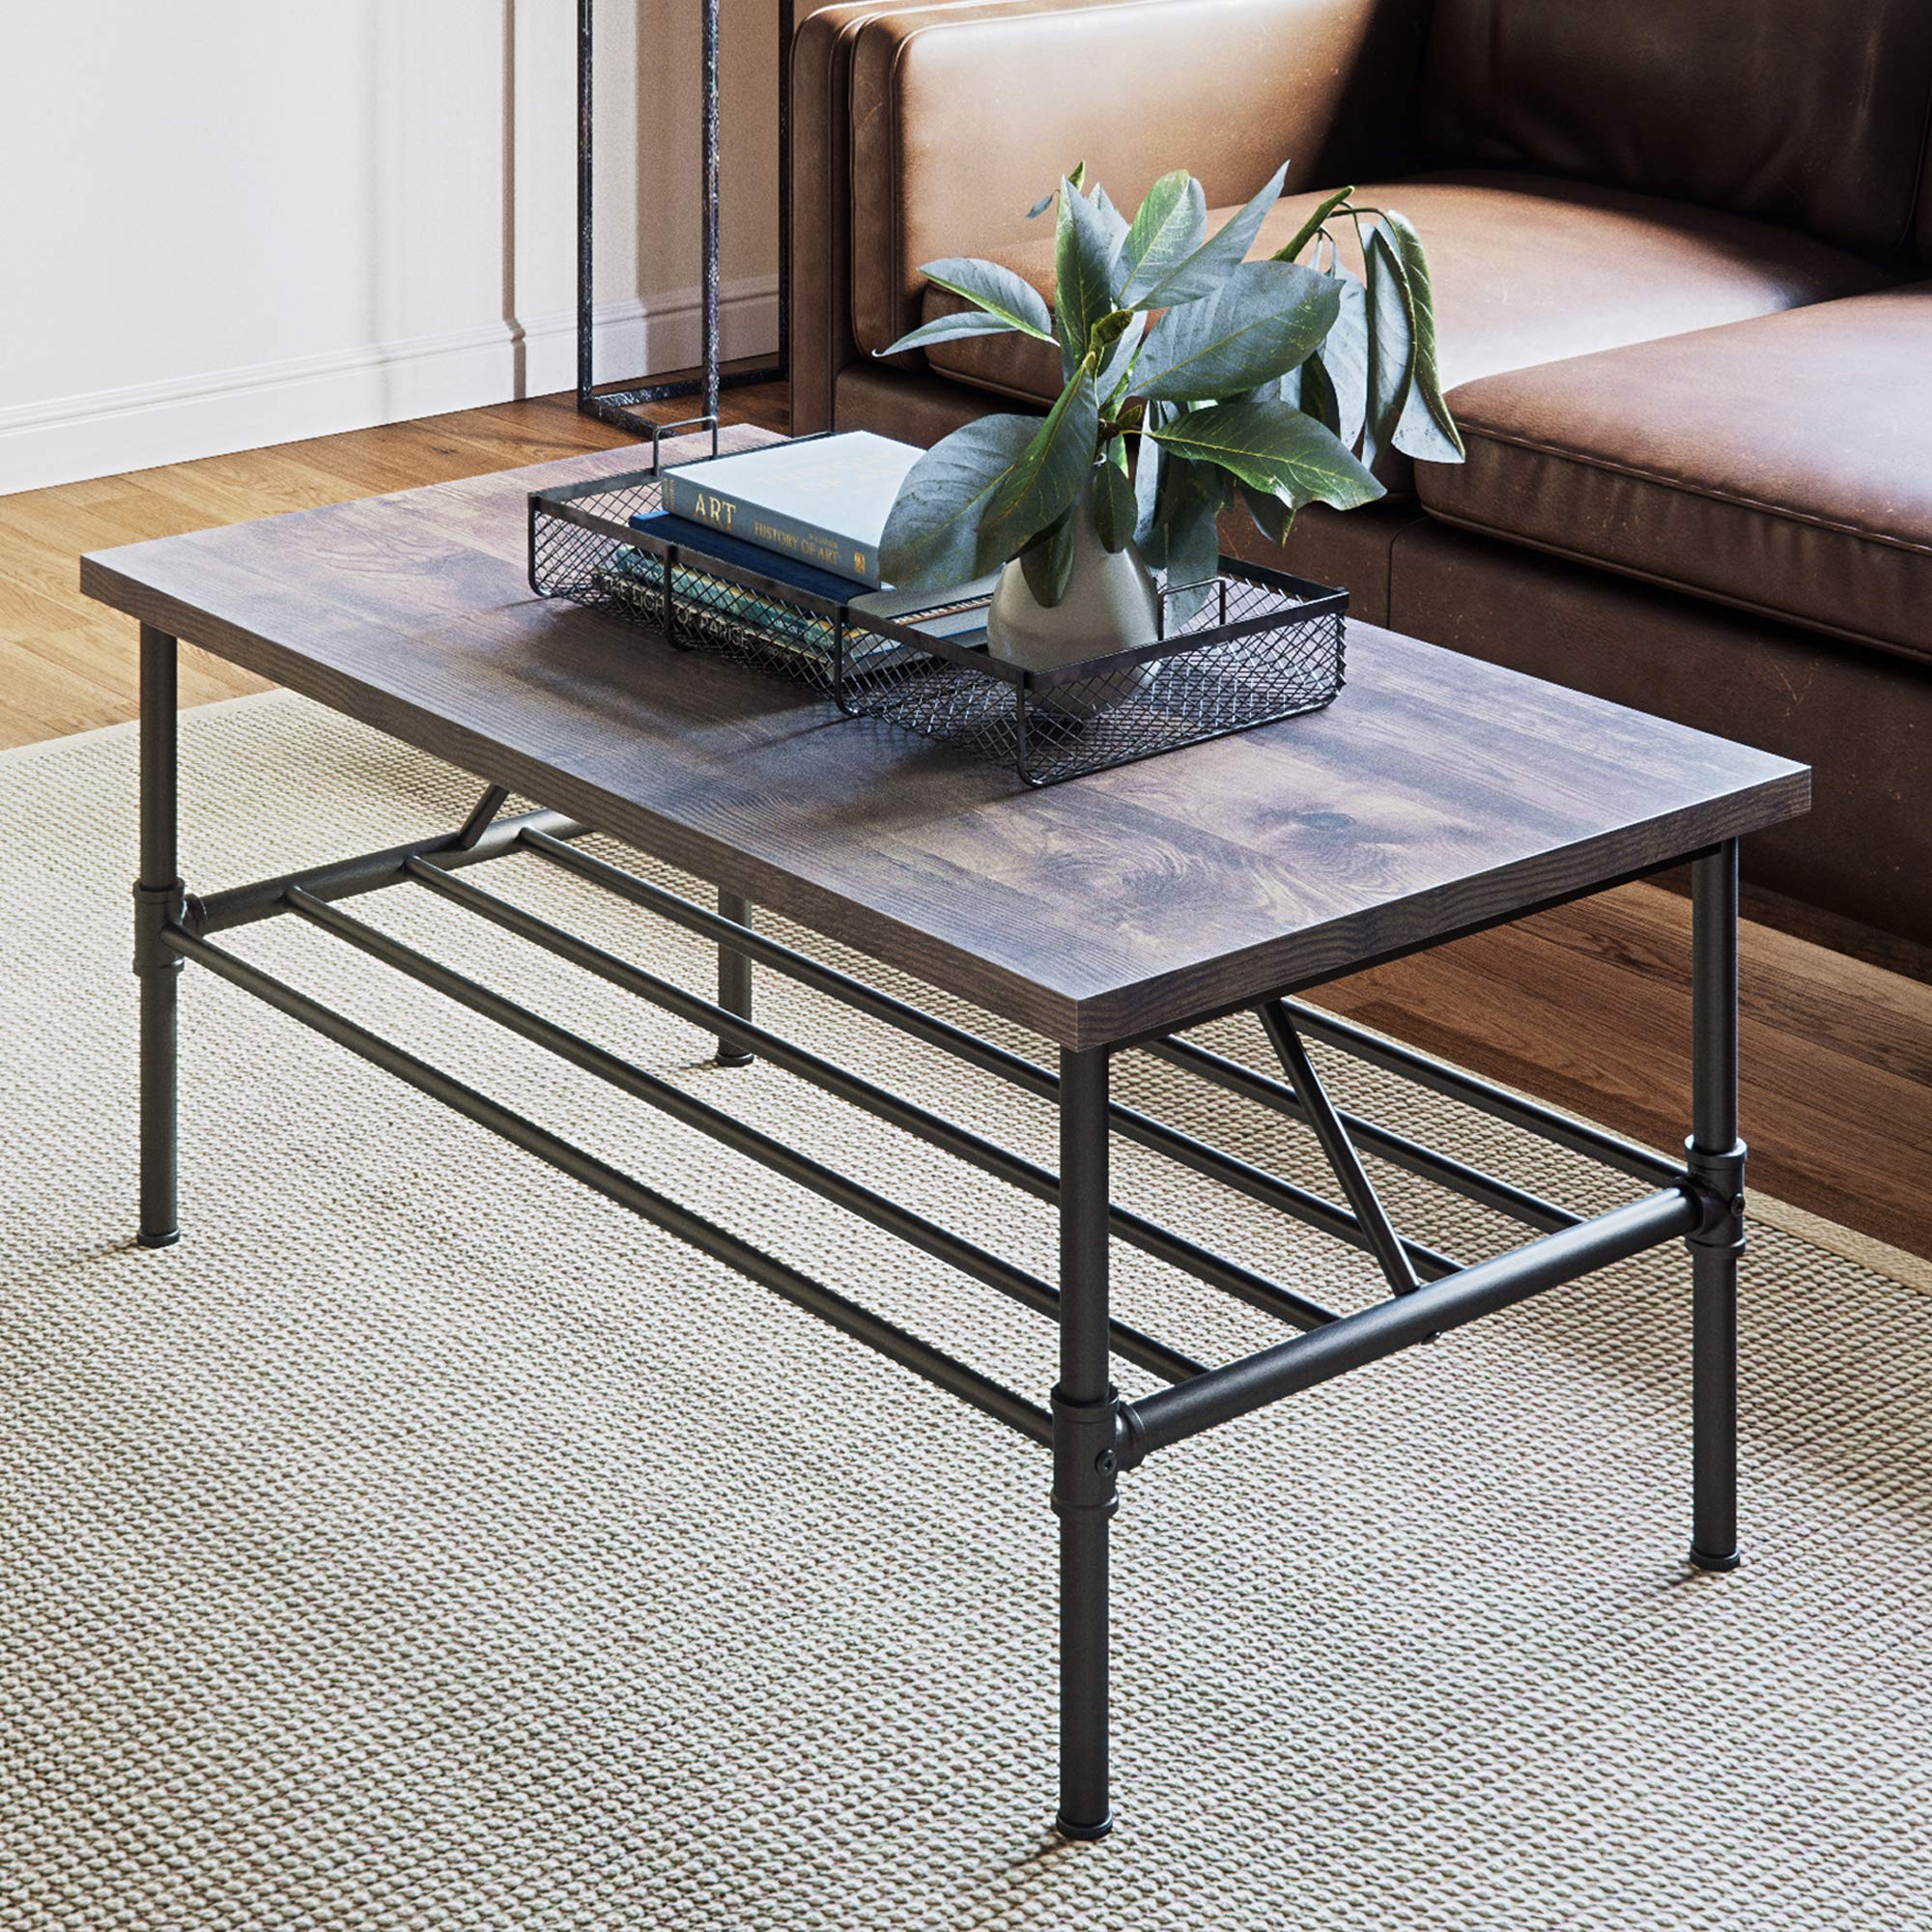 Nathan James Maxx Industrial Pipe Metal and Rustic Wood Coffee Table 41'', Gray/Black by Nathan James